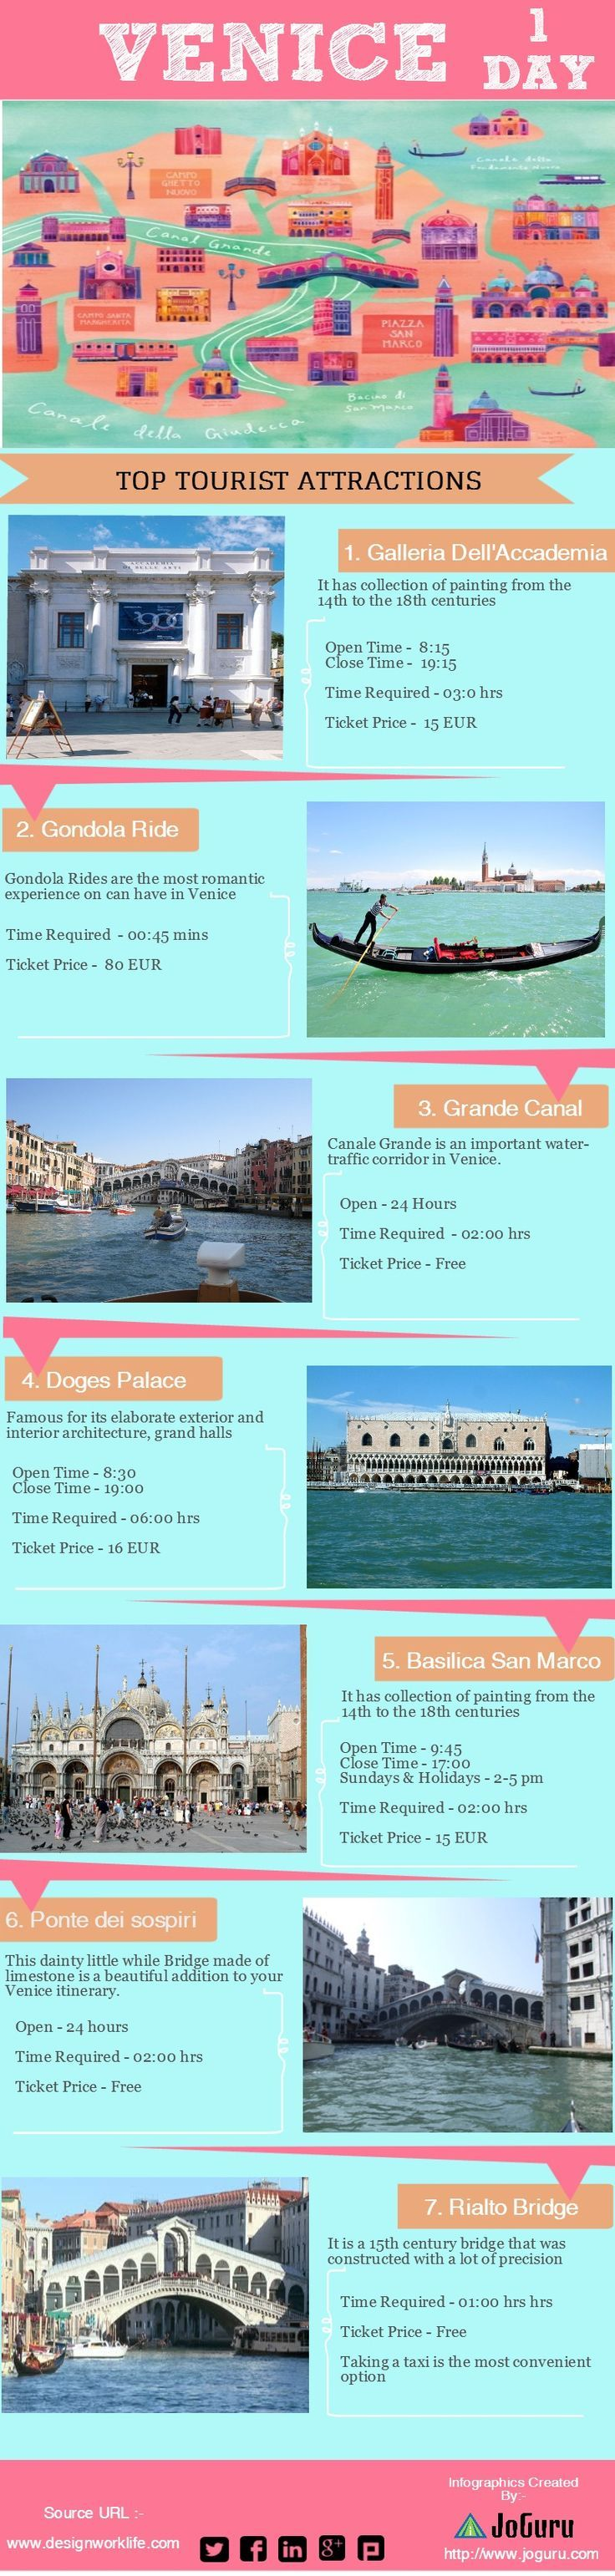 Venice Top Tourist Attractions | #travel #infographic made in Piktocha. #studyabroad #travel #europe